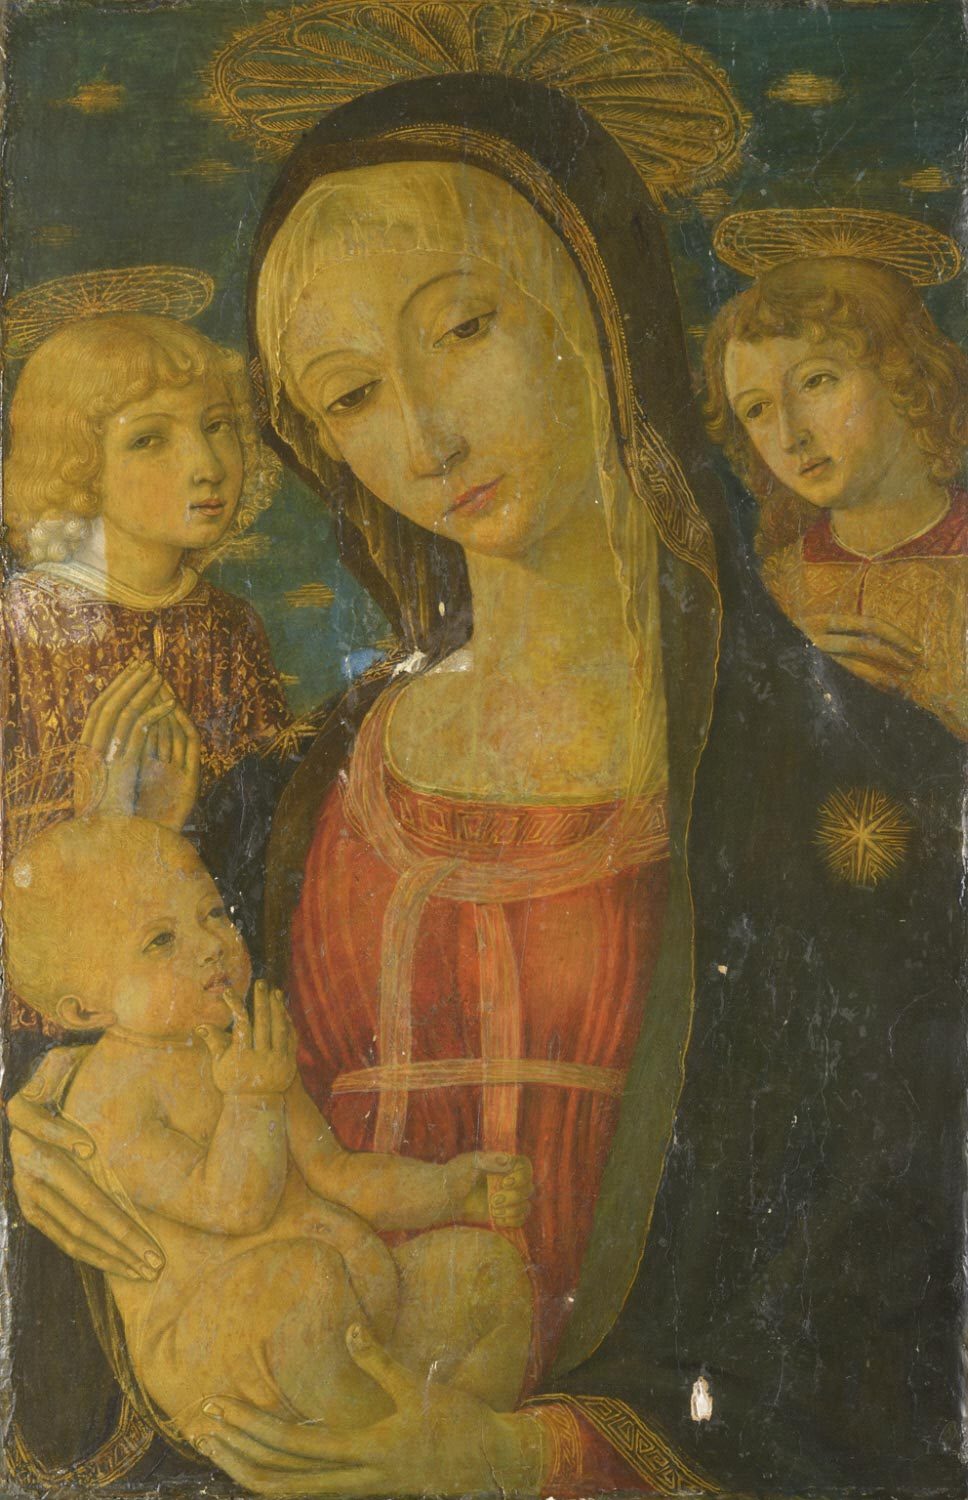 Virgin and Child, with Two Angels